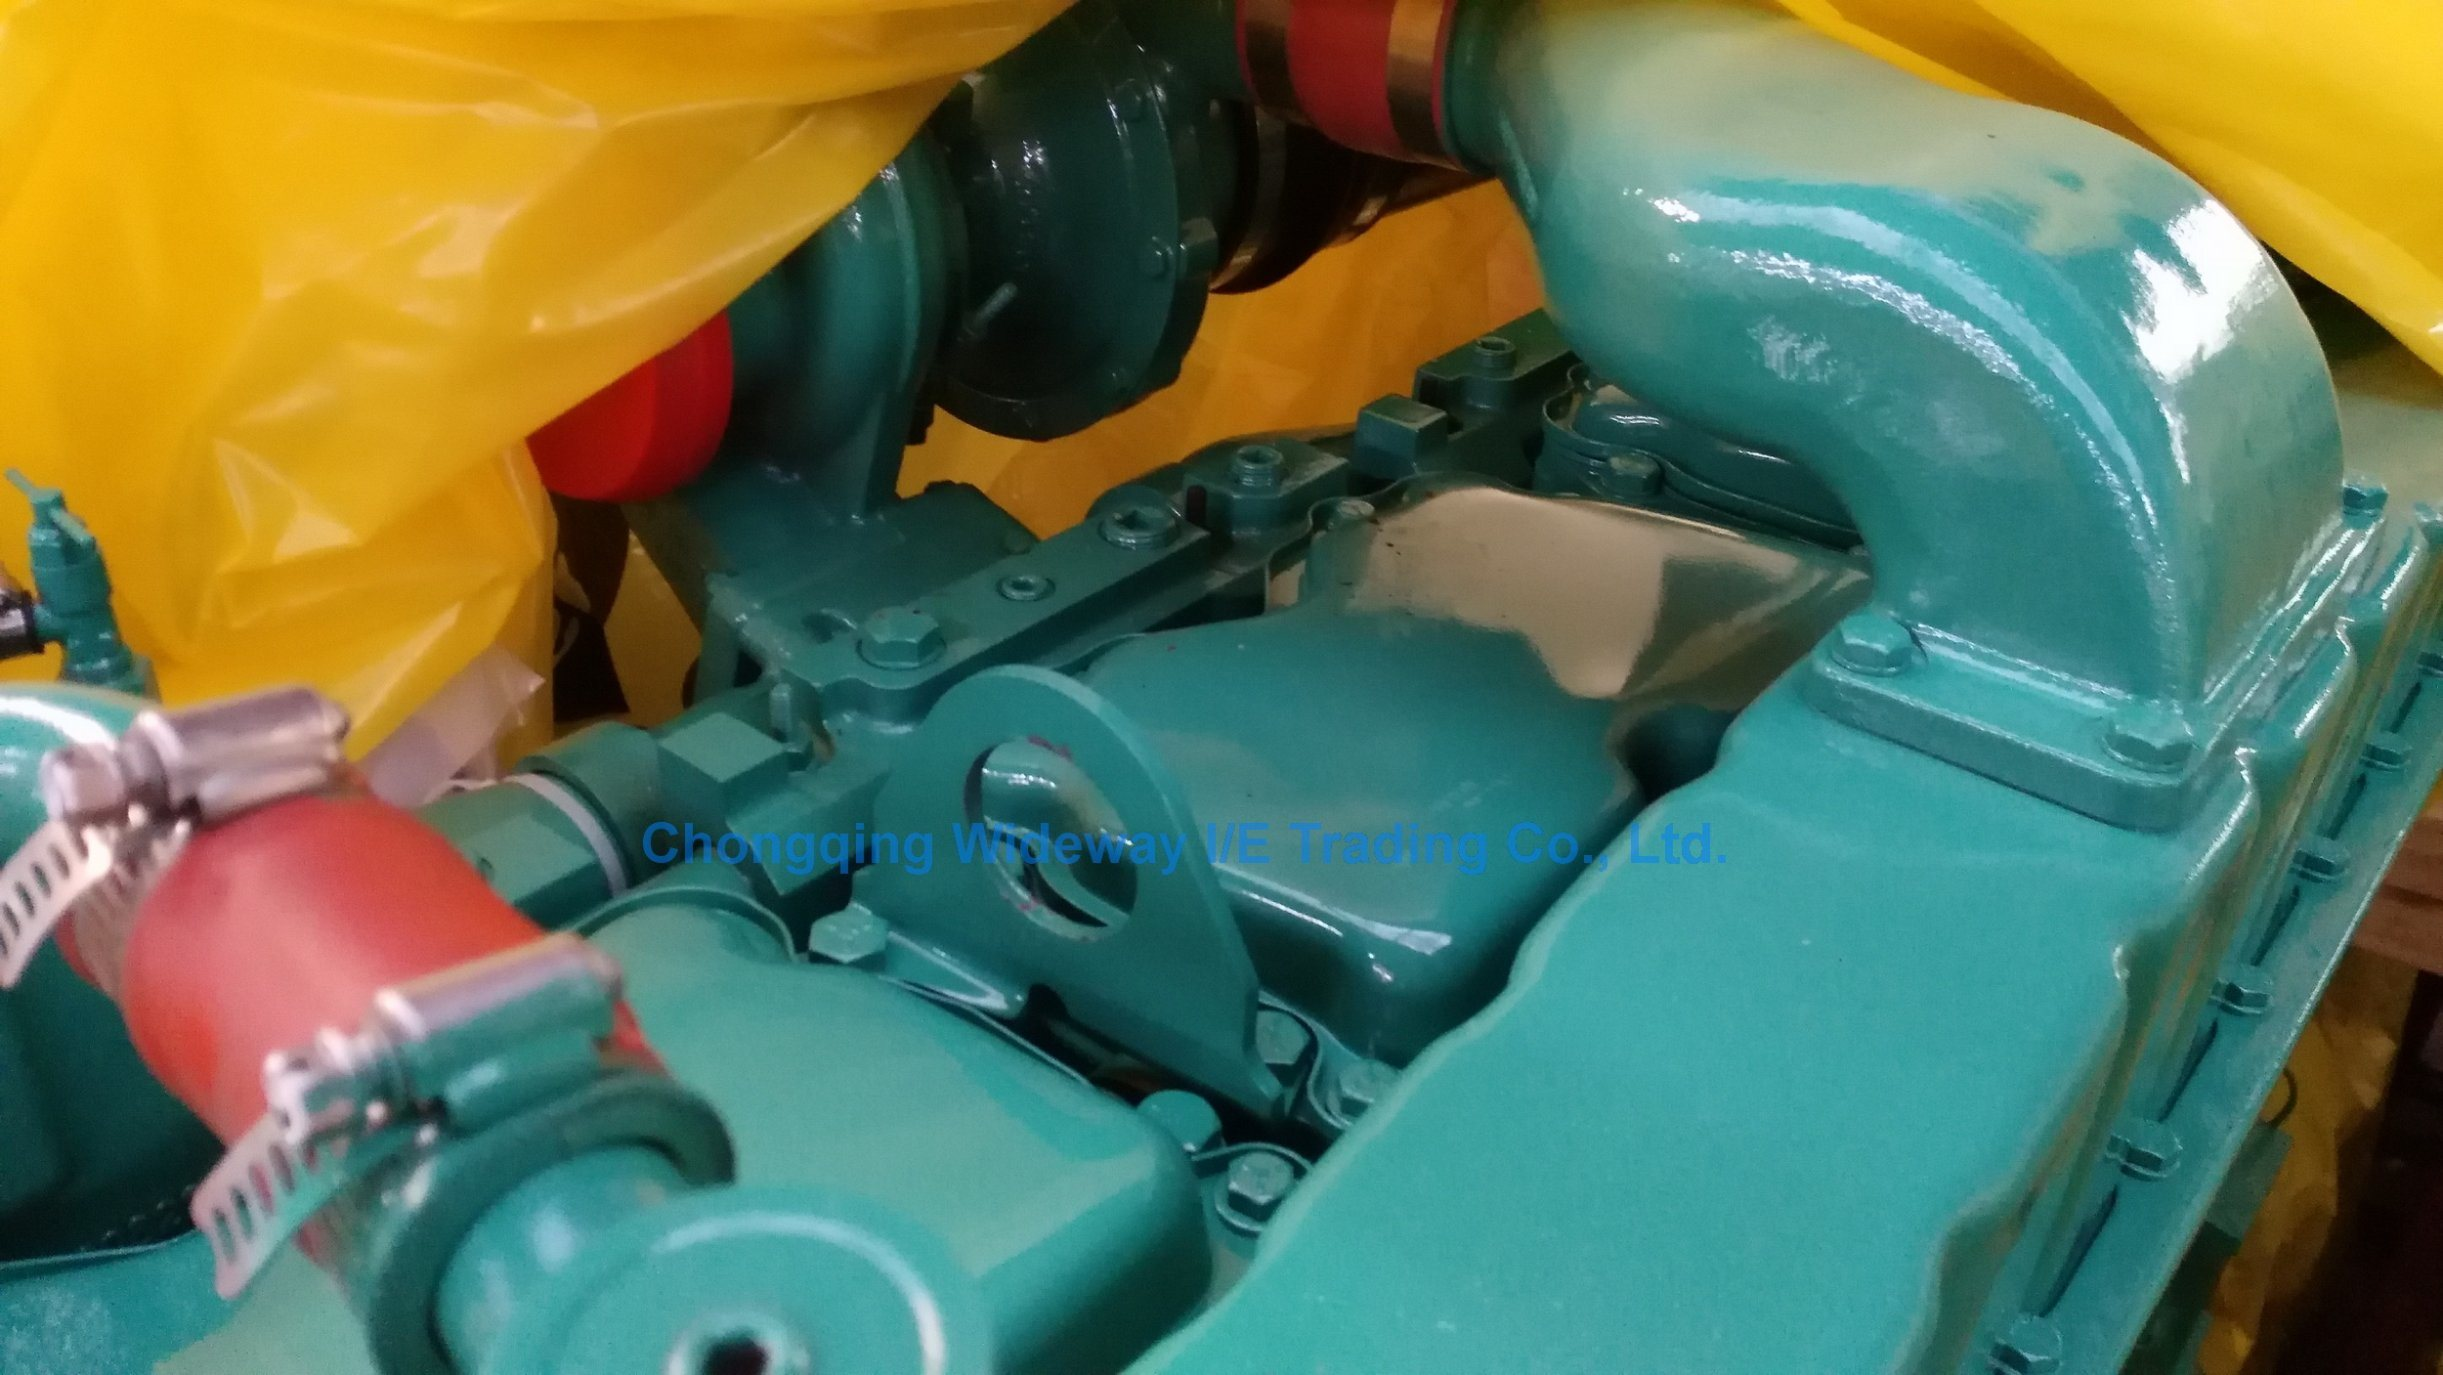 Genuine Original Ccec Nta855-G1 Cummins Diesel Engine for Generator Set